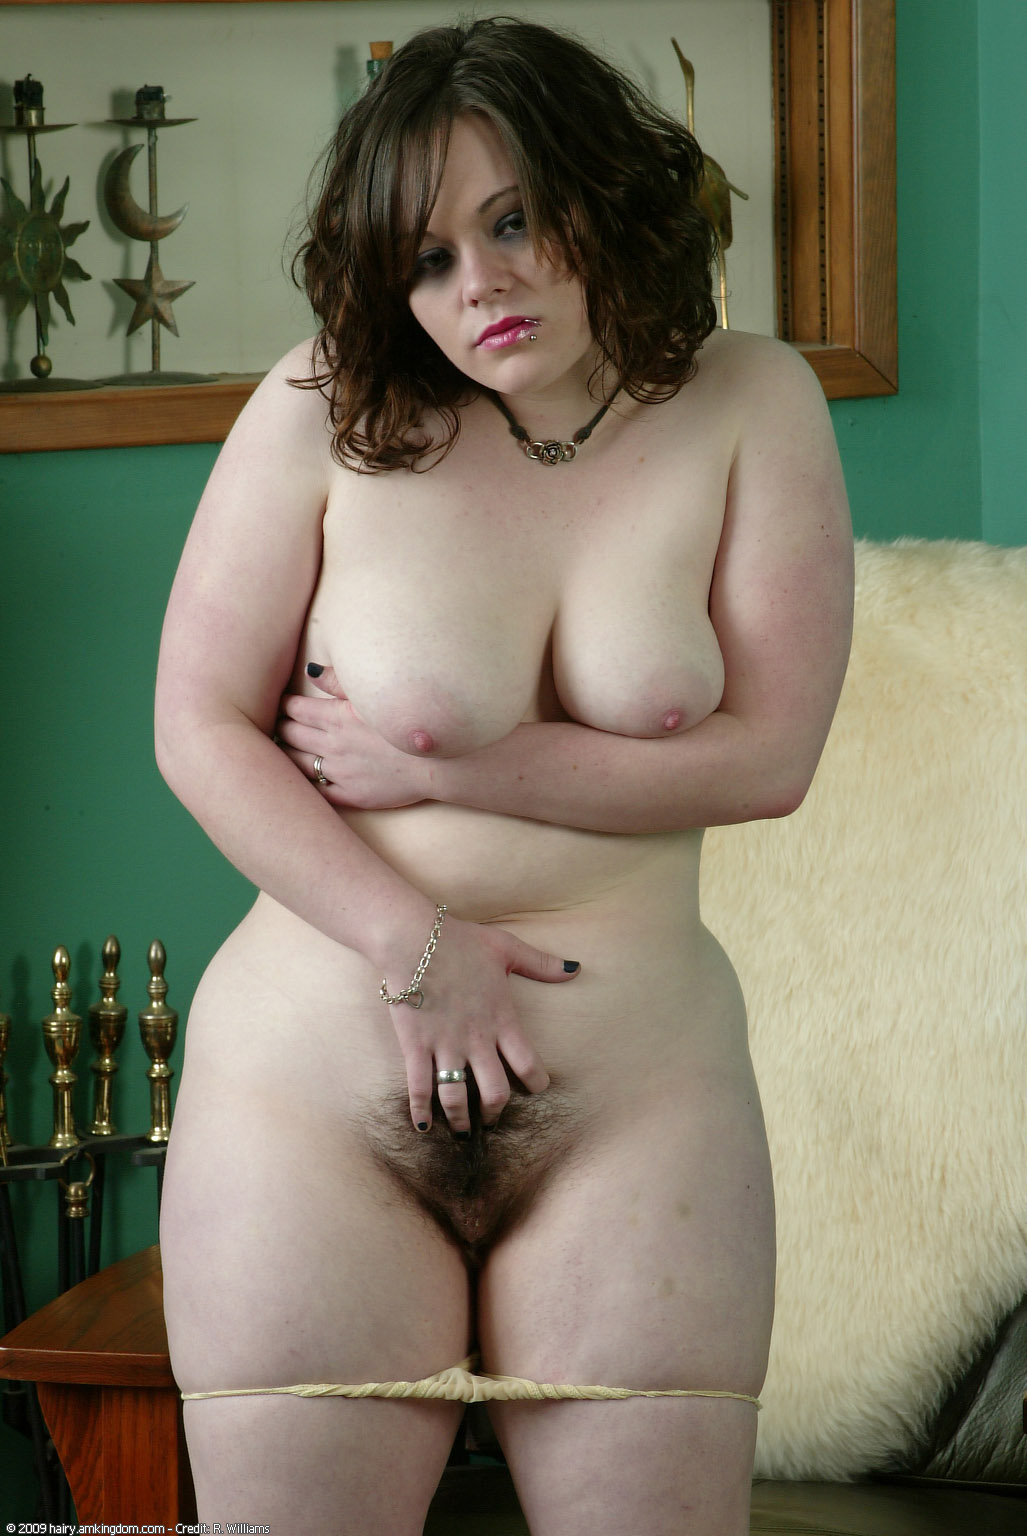 Are mistaken. Nude plump and cute